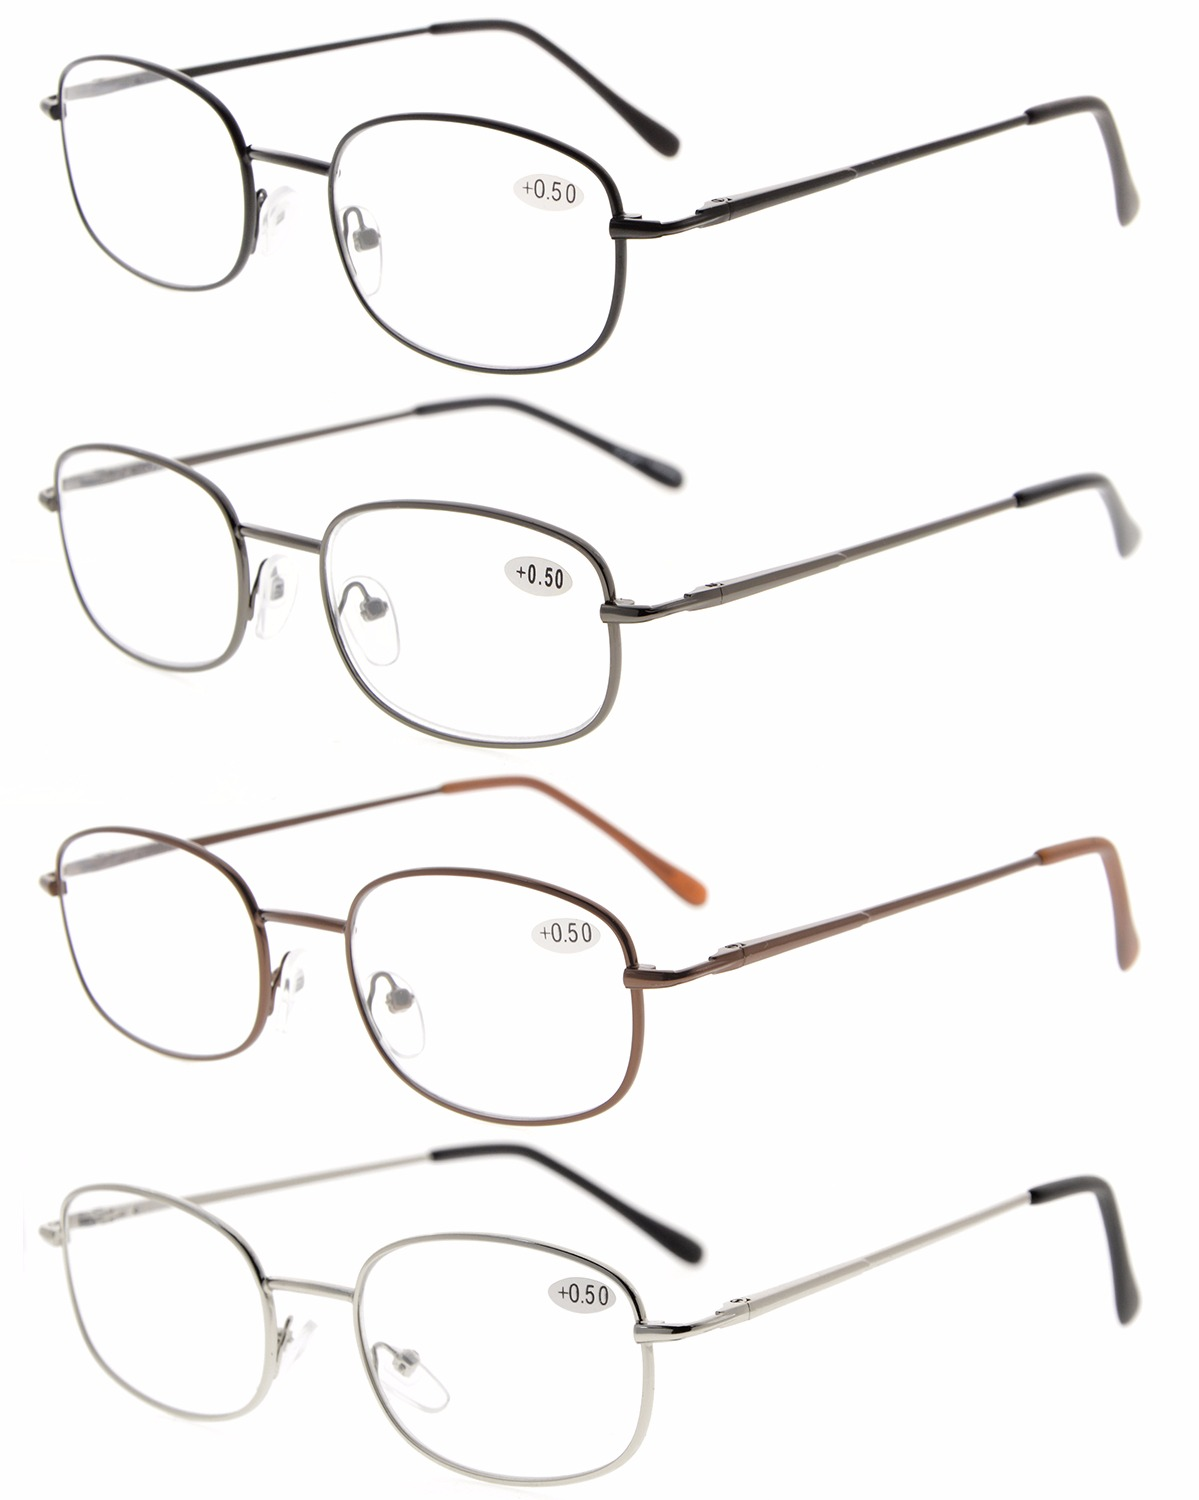 a7202157d1 Eyekepper Metal Frame Spring Hinged Arms Reading Glasses Pack of 4 Pairs  R3232-4pcs